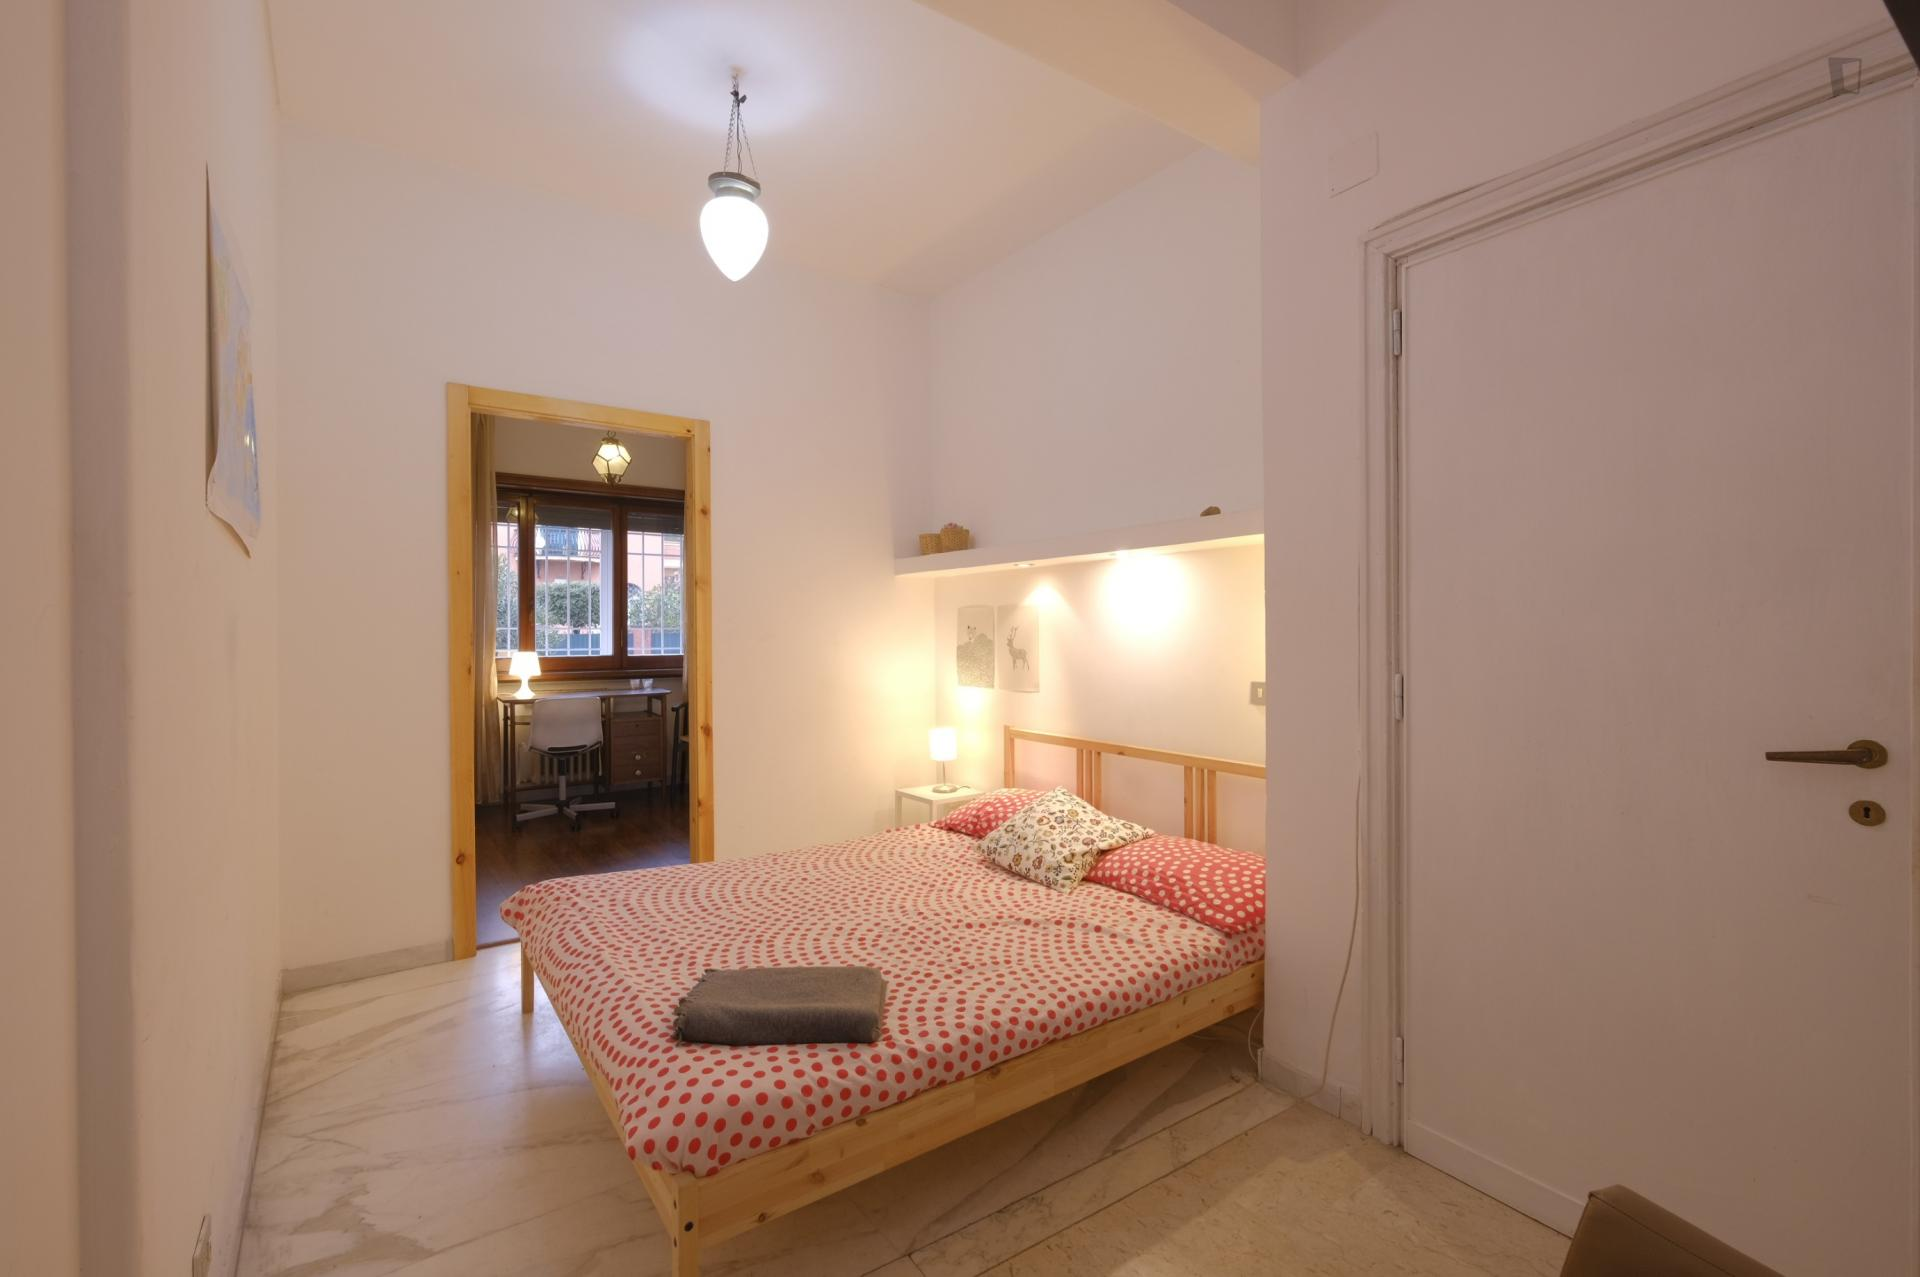 For Rent 4 bed Room in Rome Rome-City Lazio Italy, 550 EUR ...